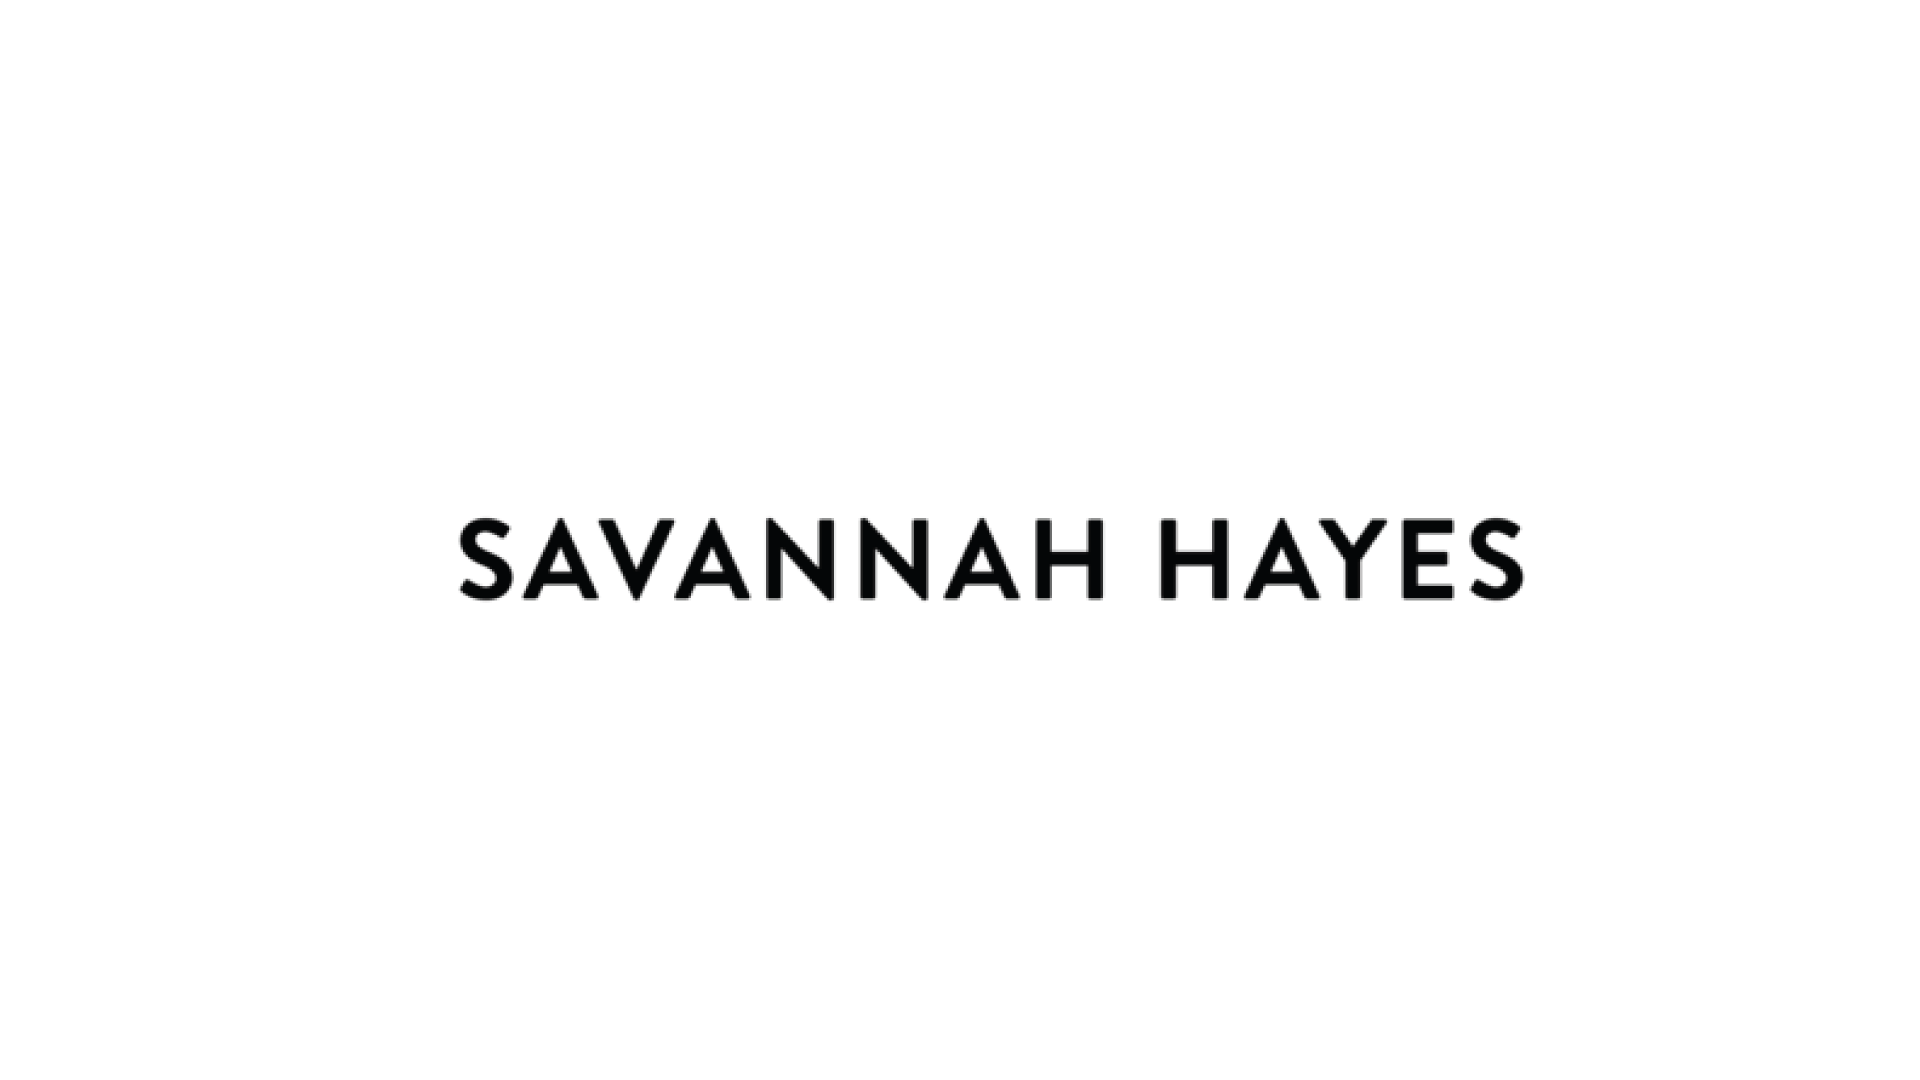 Savannah Hayes - https://savannahhayes.com/